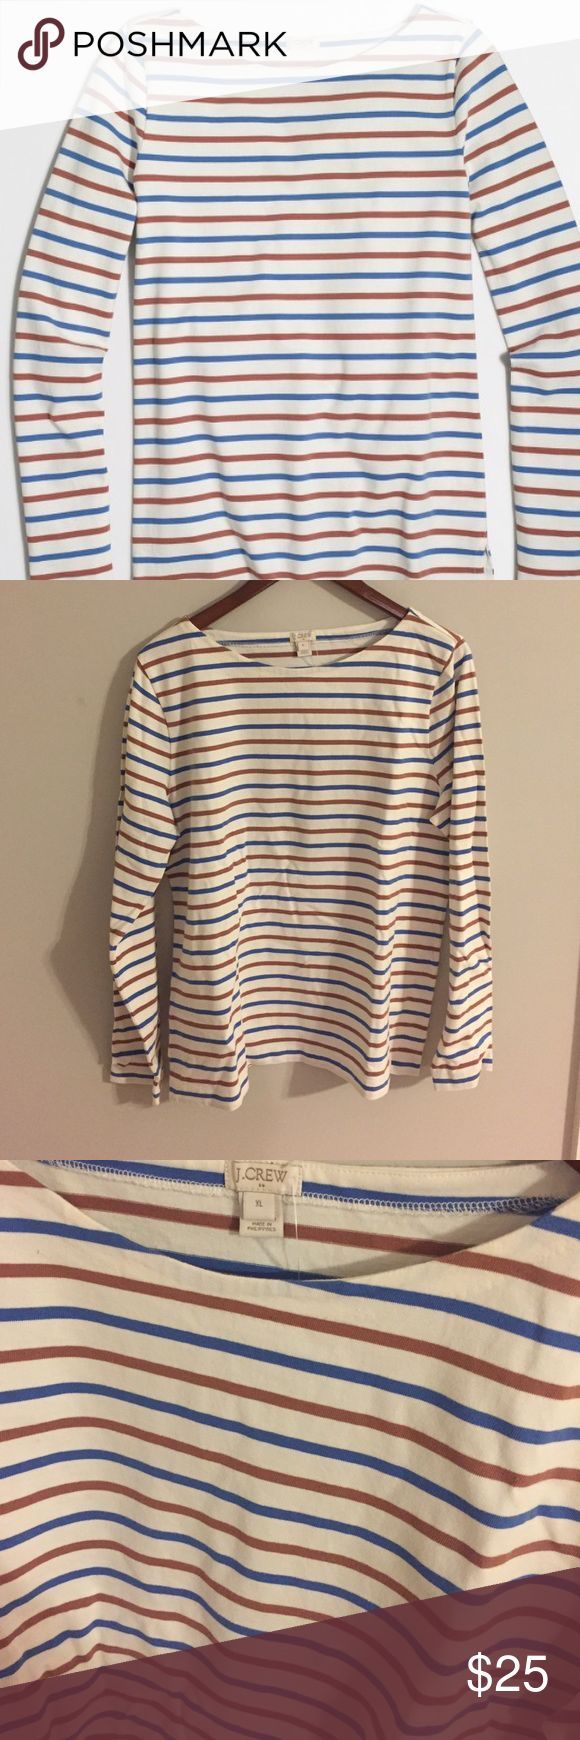 J. Crew Striped Long Sleeve Shirt Color: Hydrangea Wood.                                                   Cotton. Slightly loose fit. Long sleeves. Machine wash.                                                                     J. Crew Factory💖#53A J. Crew Tops